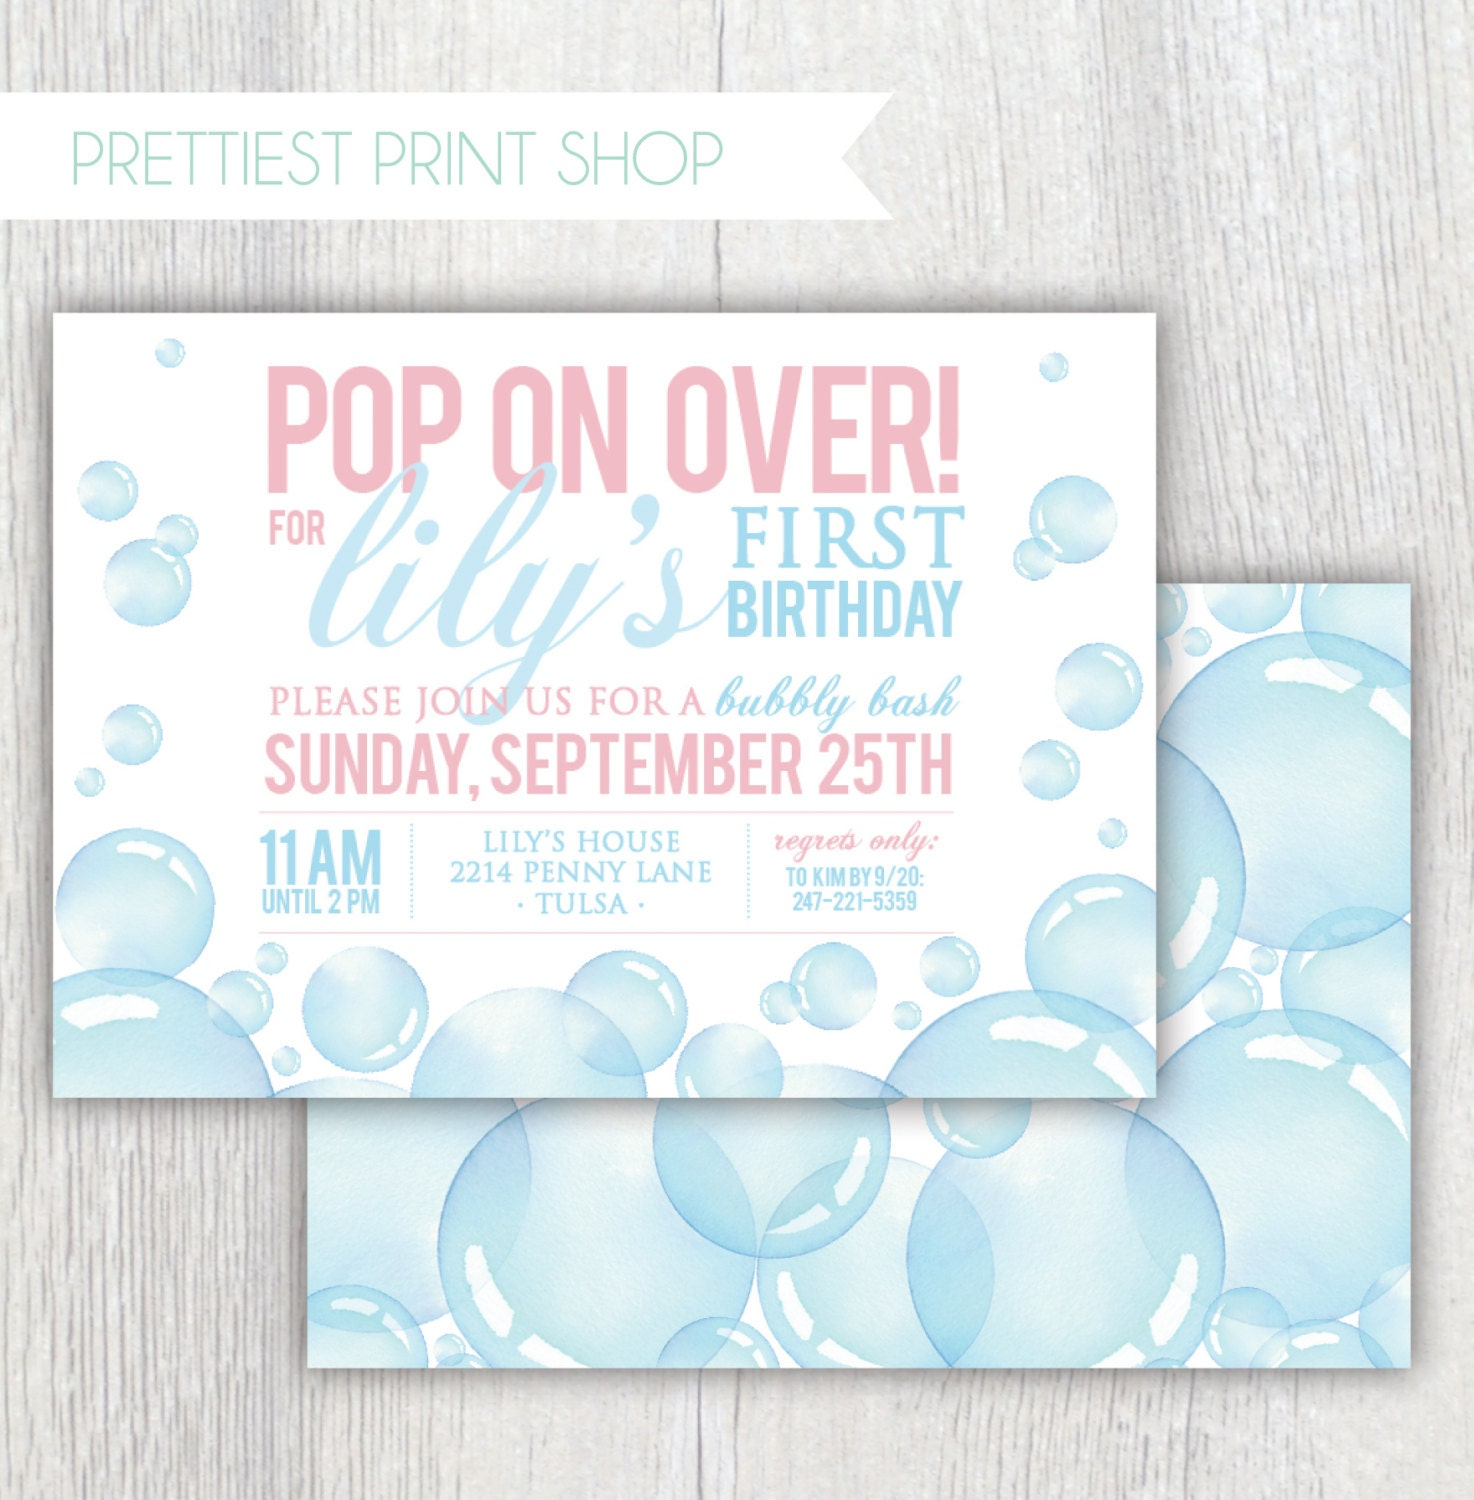 Printable bubbles birthday invitation - Bubbly Bash - Pop on over ...